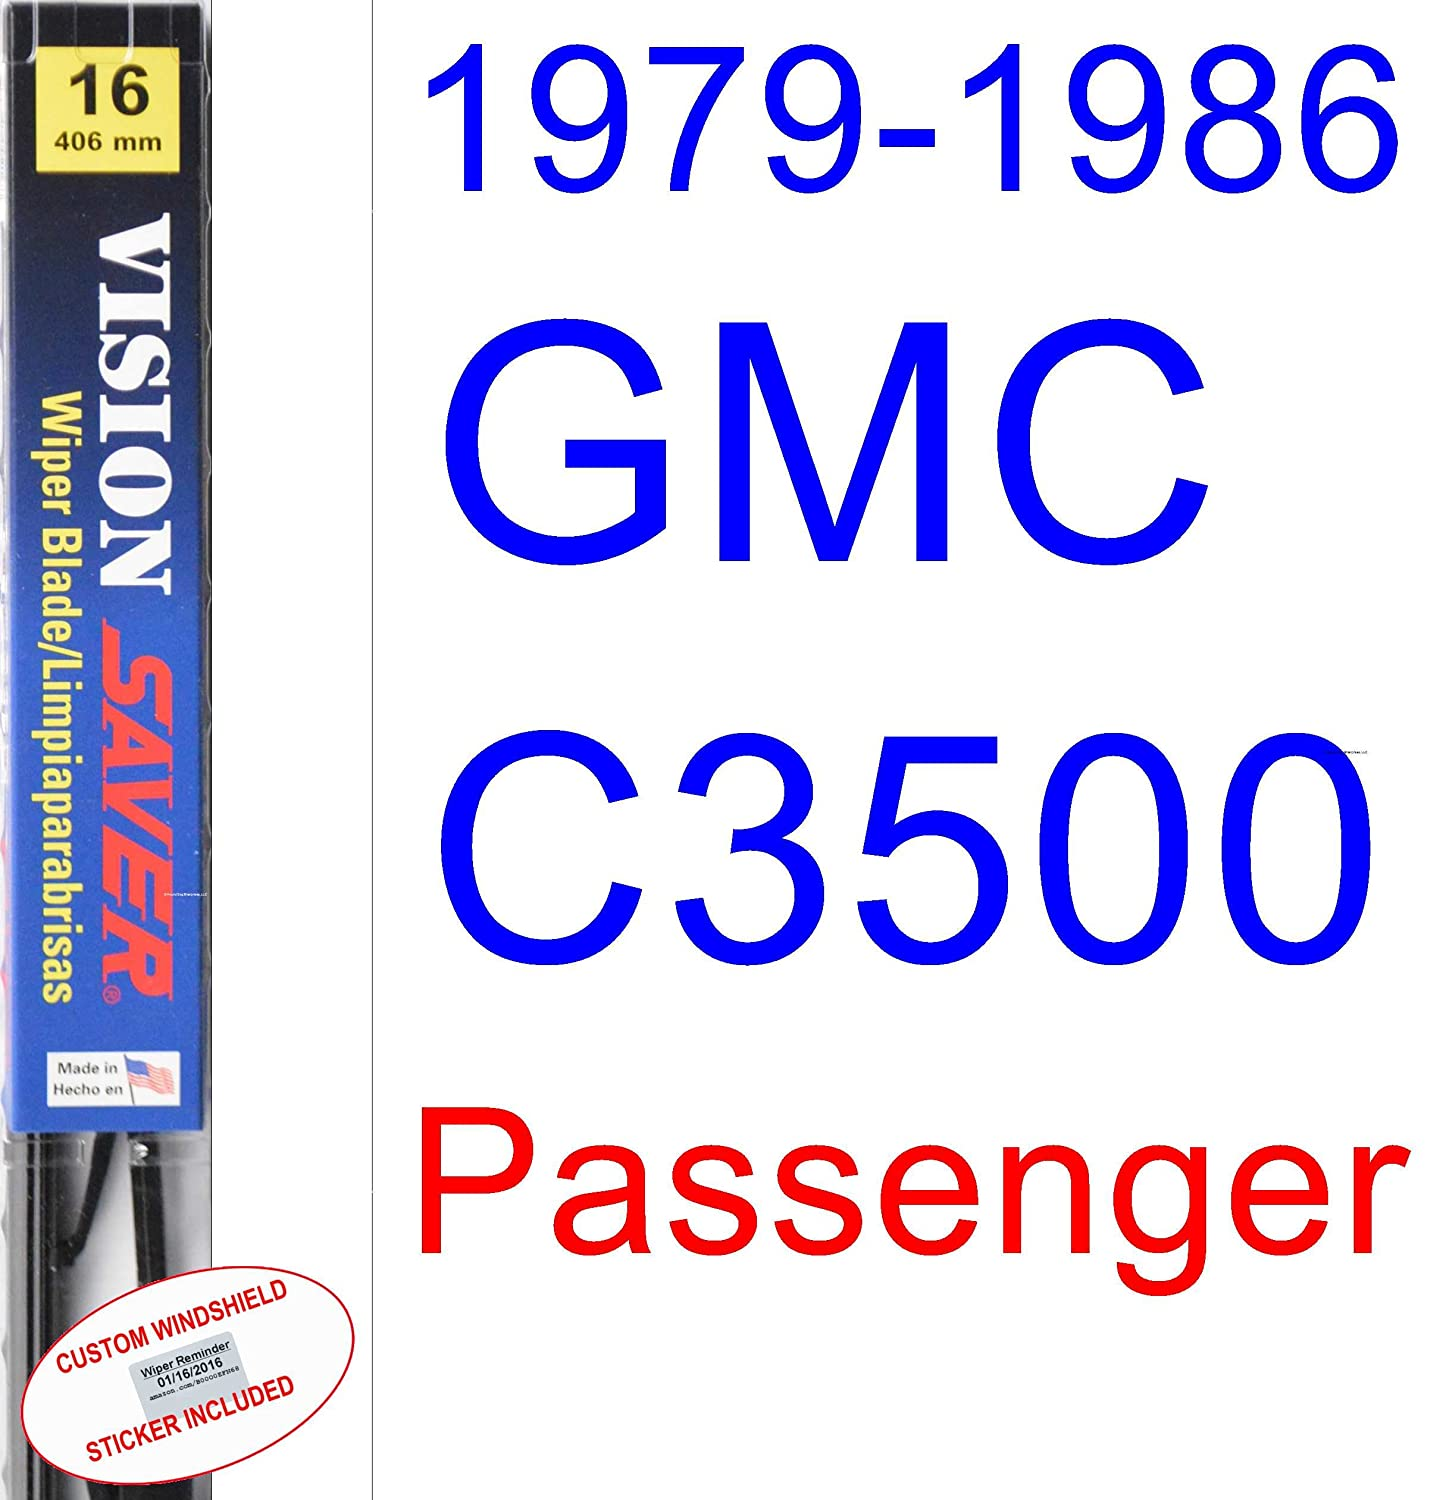 Amazon.com: 1979-1986 GMC C3500 Wiper Blade (Passenger) (Saver Automotive Products-Vision Saver) (1980,1981,1982,1983,1984,1985): Automotive